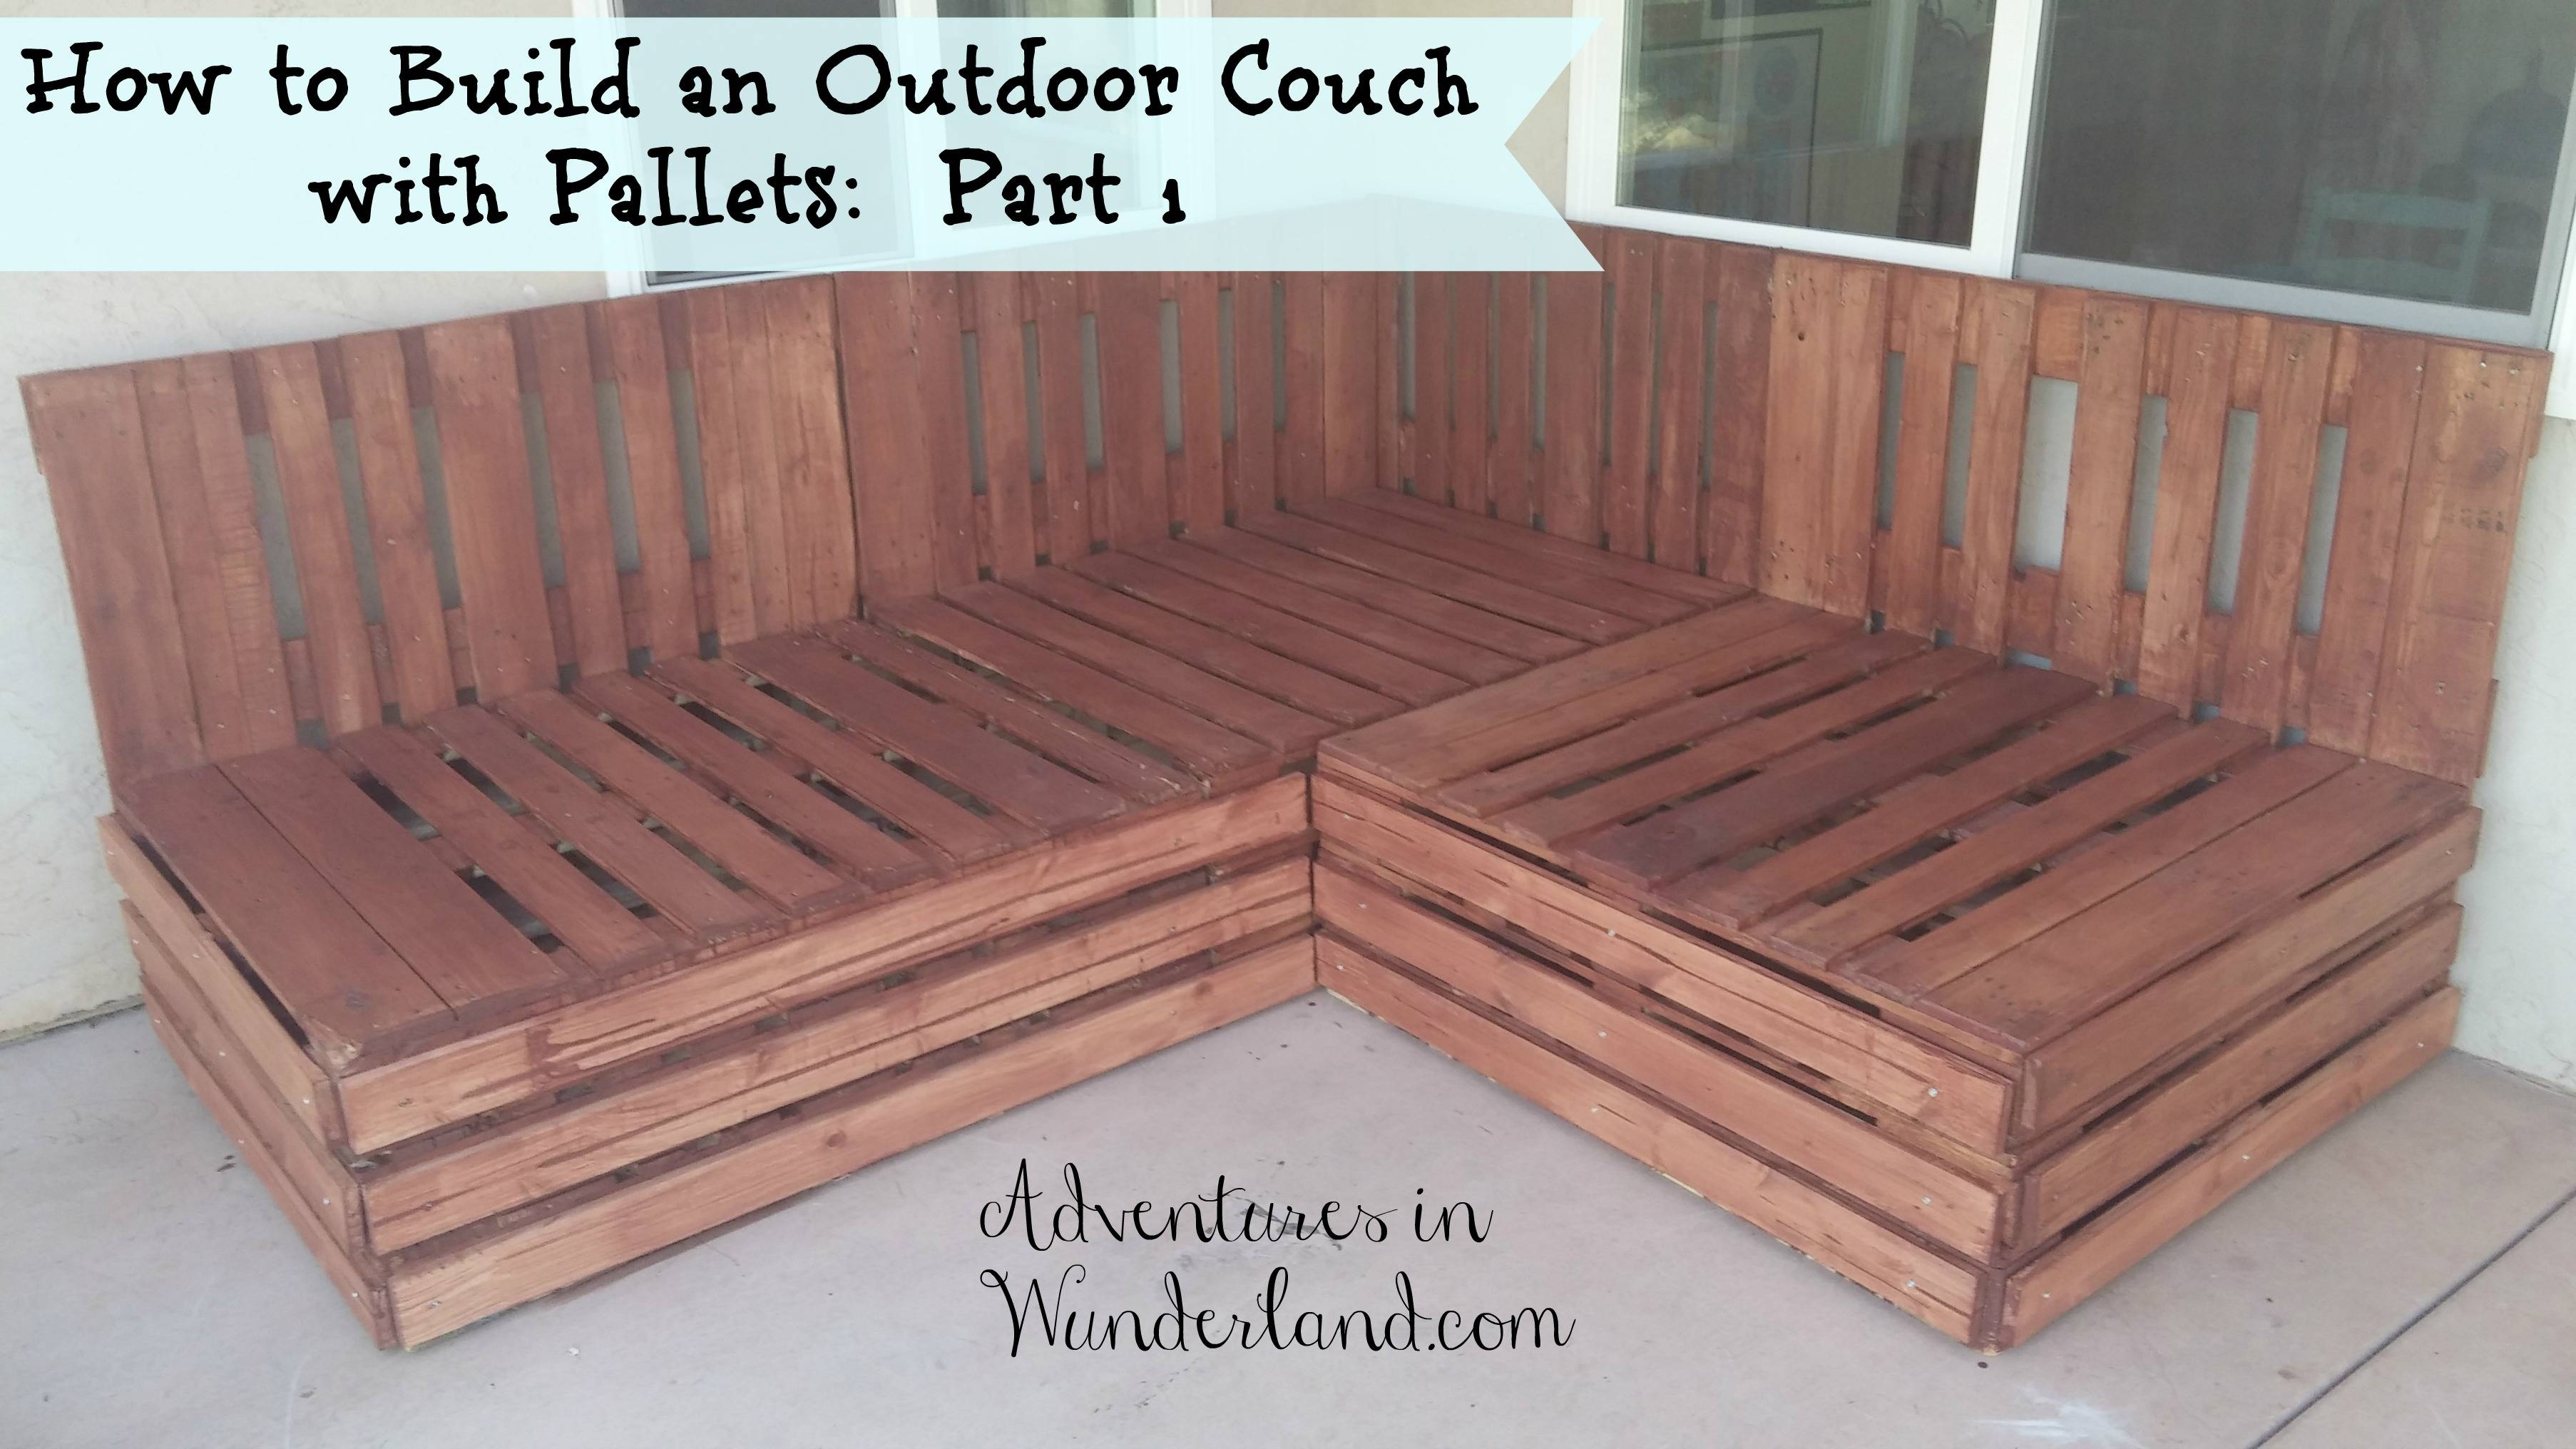 How To Build An Outdoor Couch With Pallets: Part 1 pertaining to Building A Sectional Sofa (Image 23 of 30)